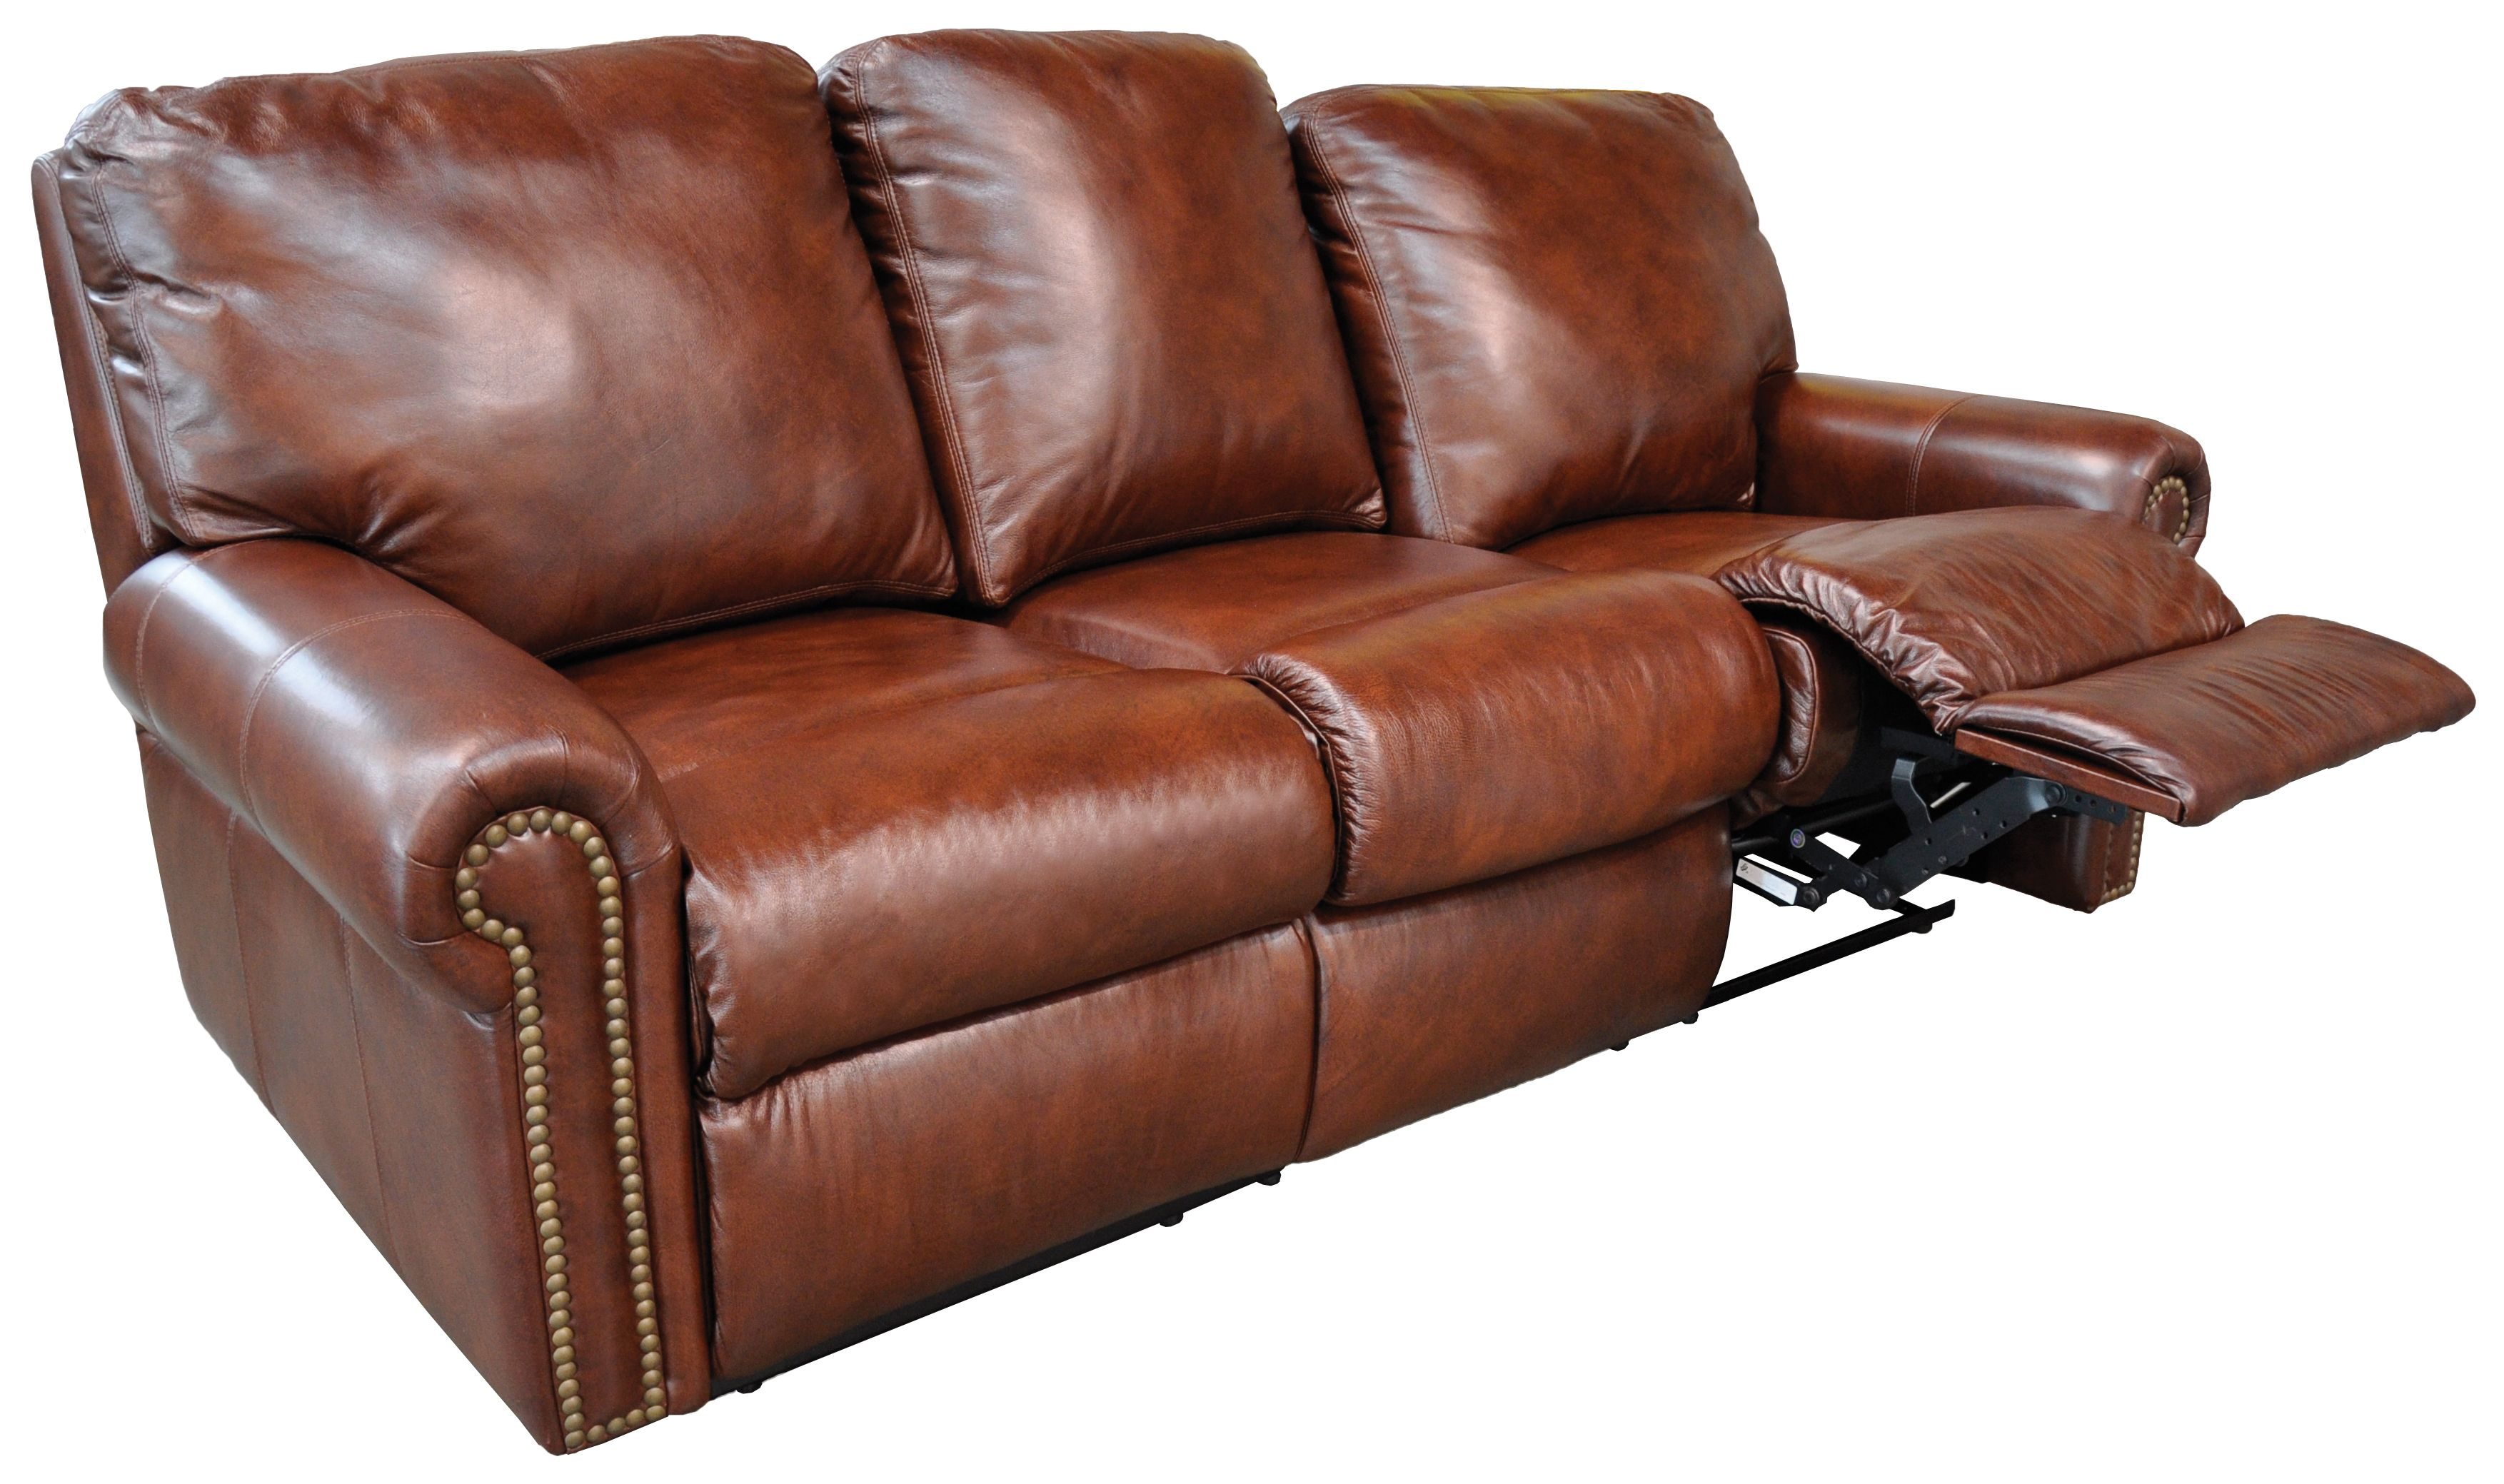 Delicieux Furniture : Omnia Leather Fairmont Reclining Sofa Top Full Grain .